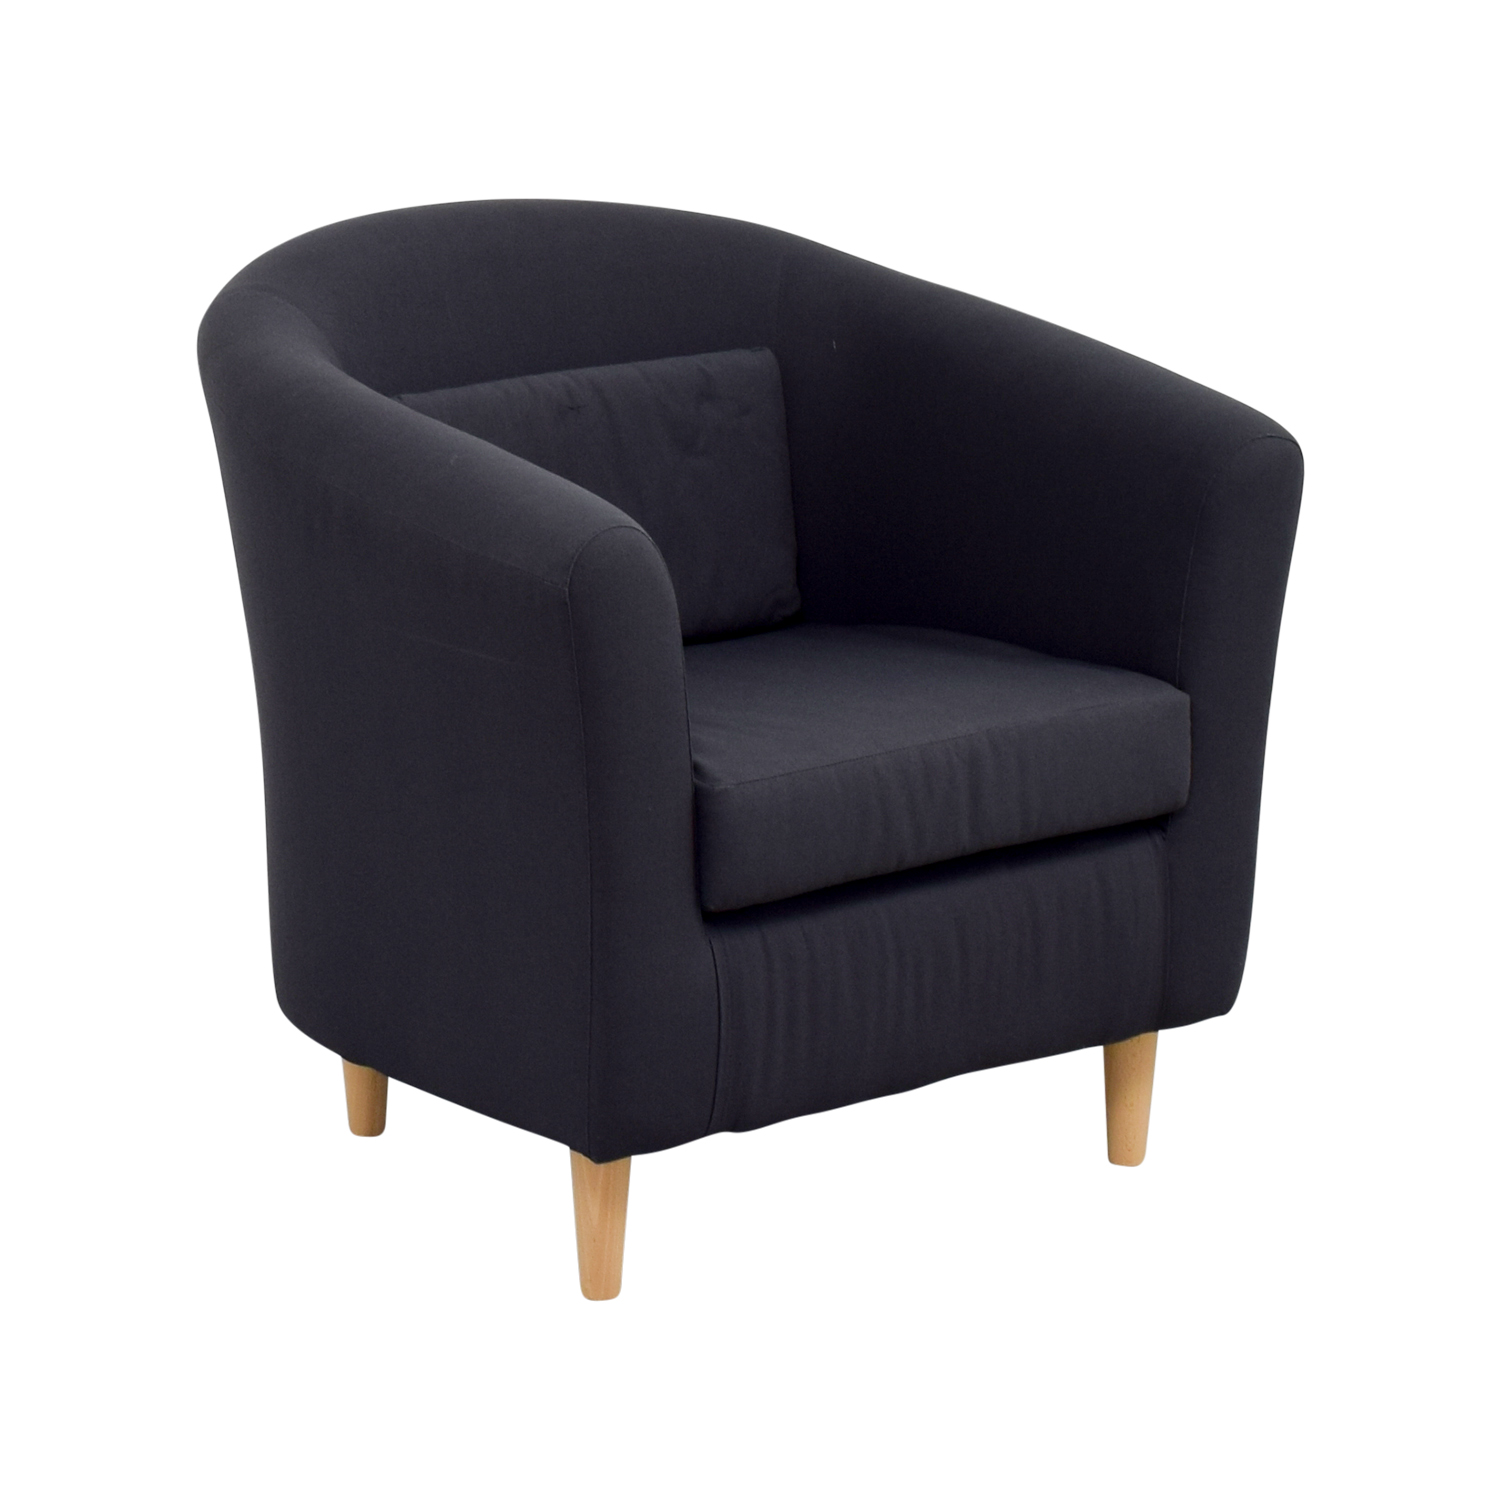 40 off ikea ikea tullsta armchair chairs for Ikea tullsta